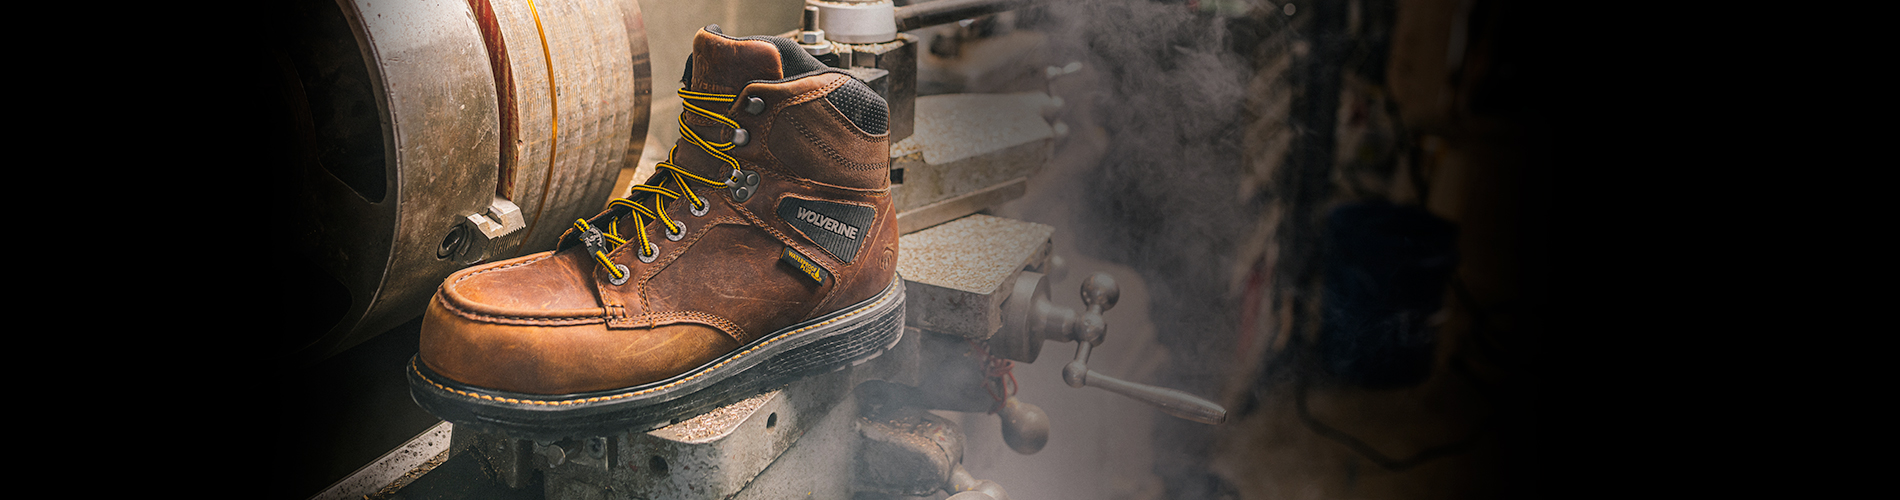 Wolverine Hellcat boot on a construction site.